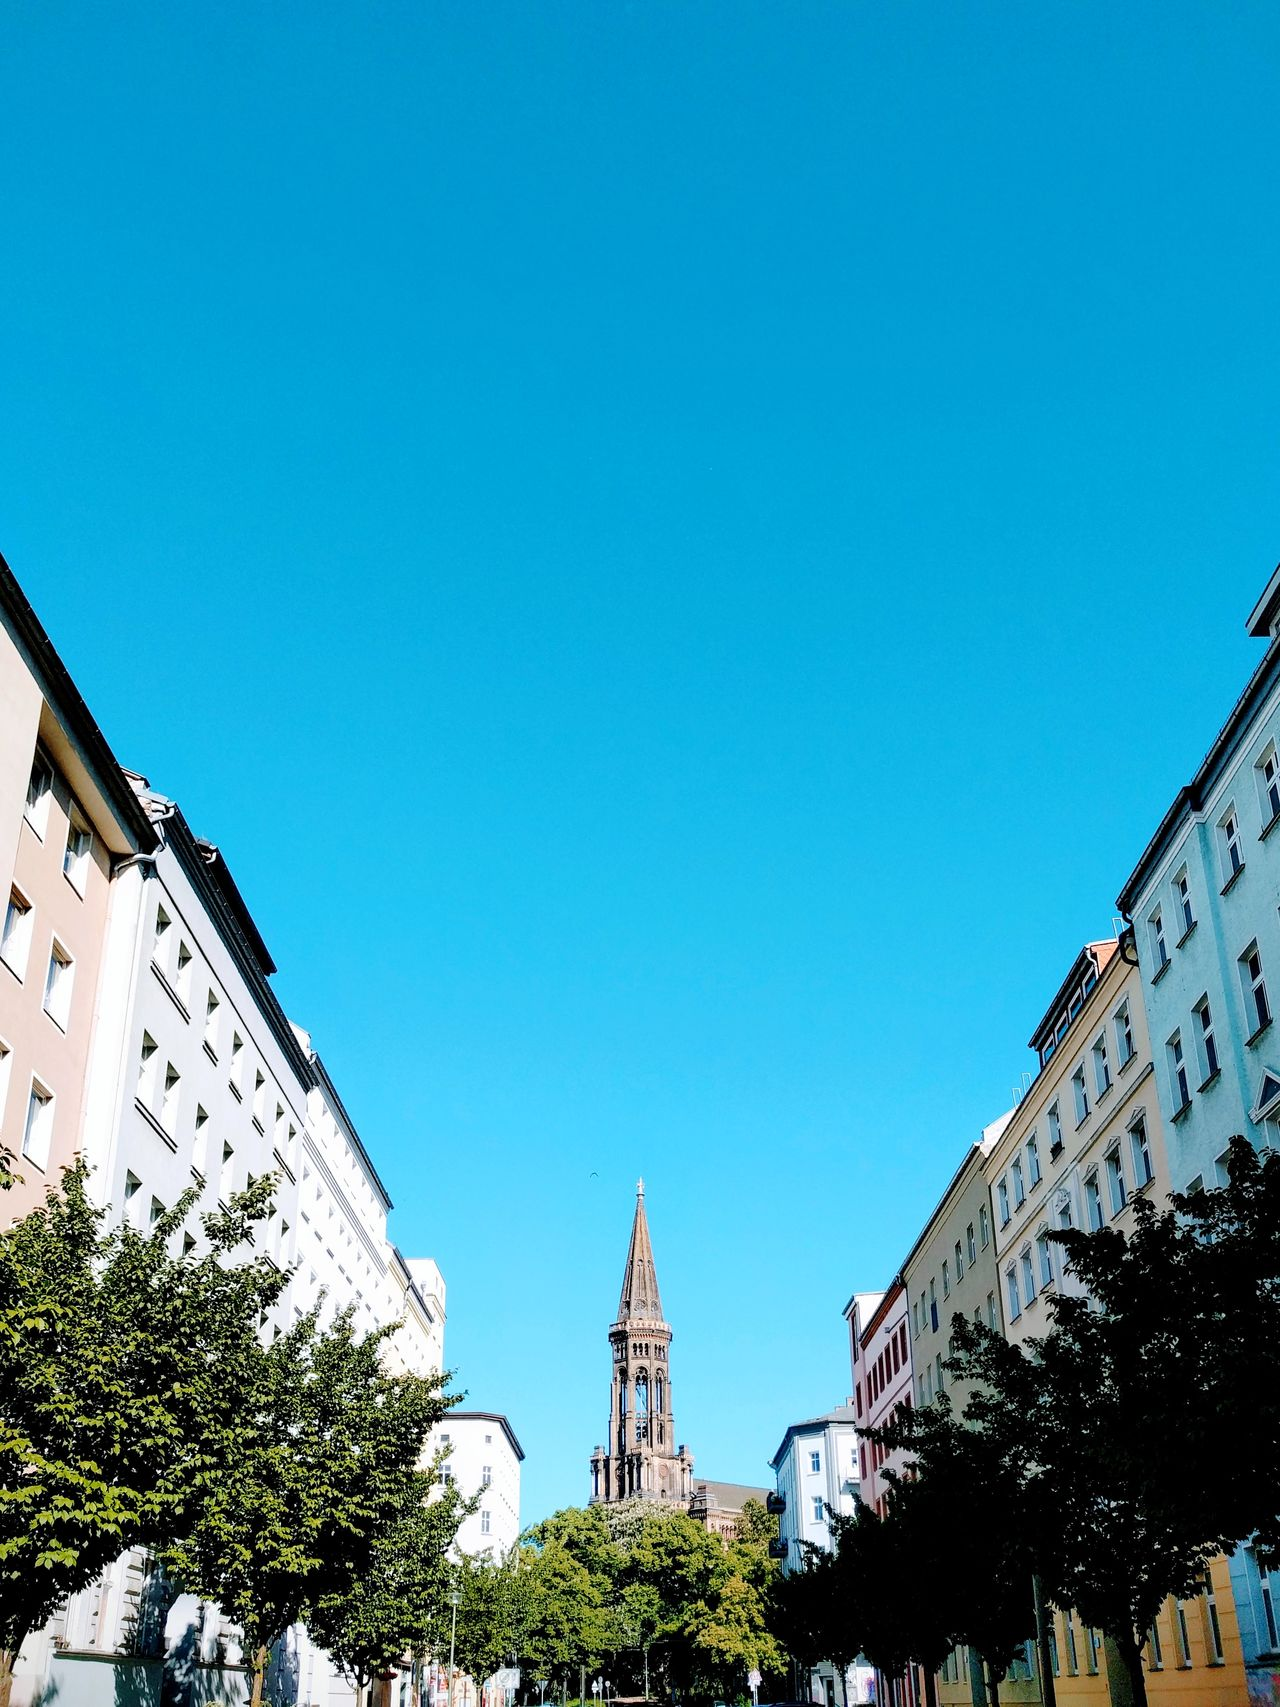 Outdoors Day Low Angle View History Sky Travel Destinations Architecture Blue No People Clear Sky Building Exterior Tree Zionskirche Berlin Travel Destination Neighborhood Map Live For The Story Architecture Copy Space Cityscape City